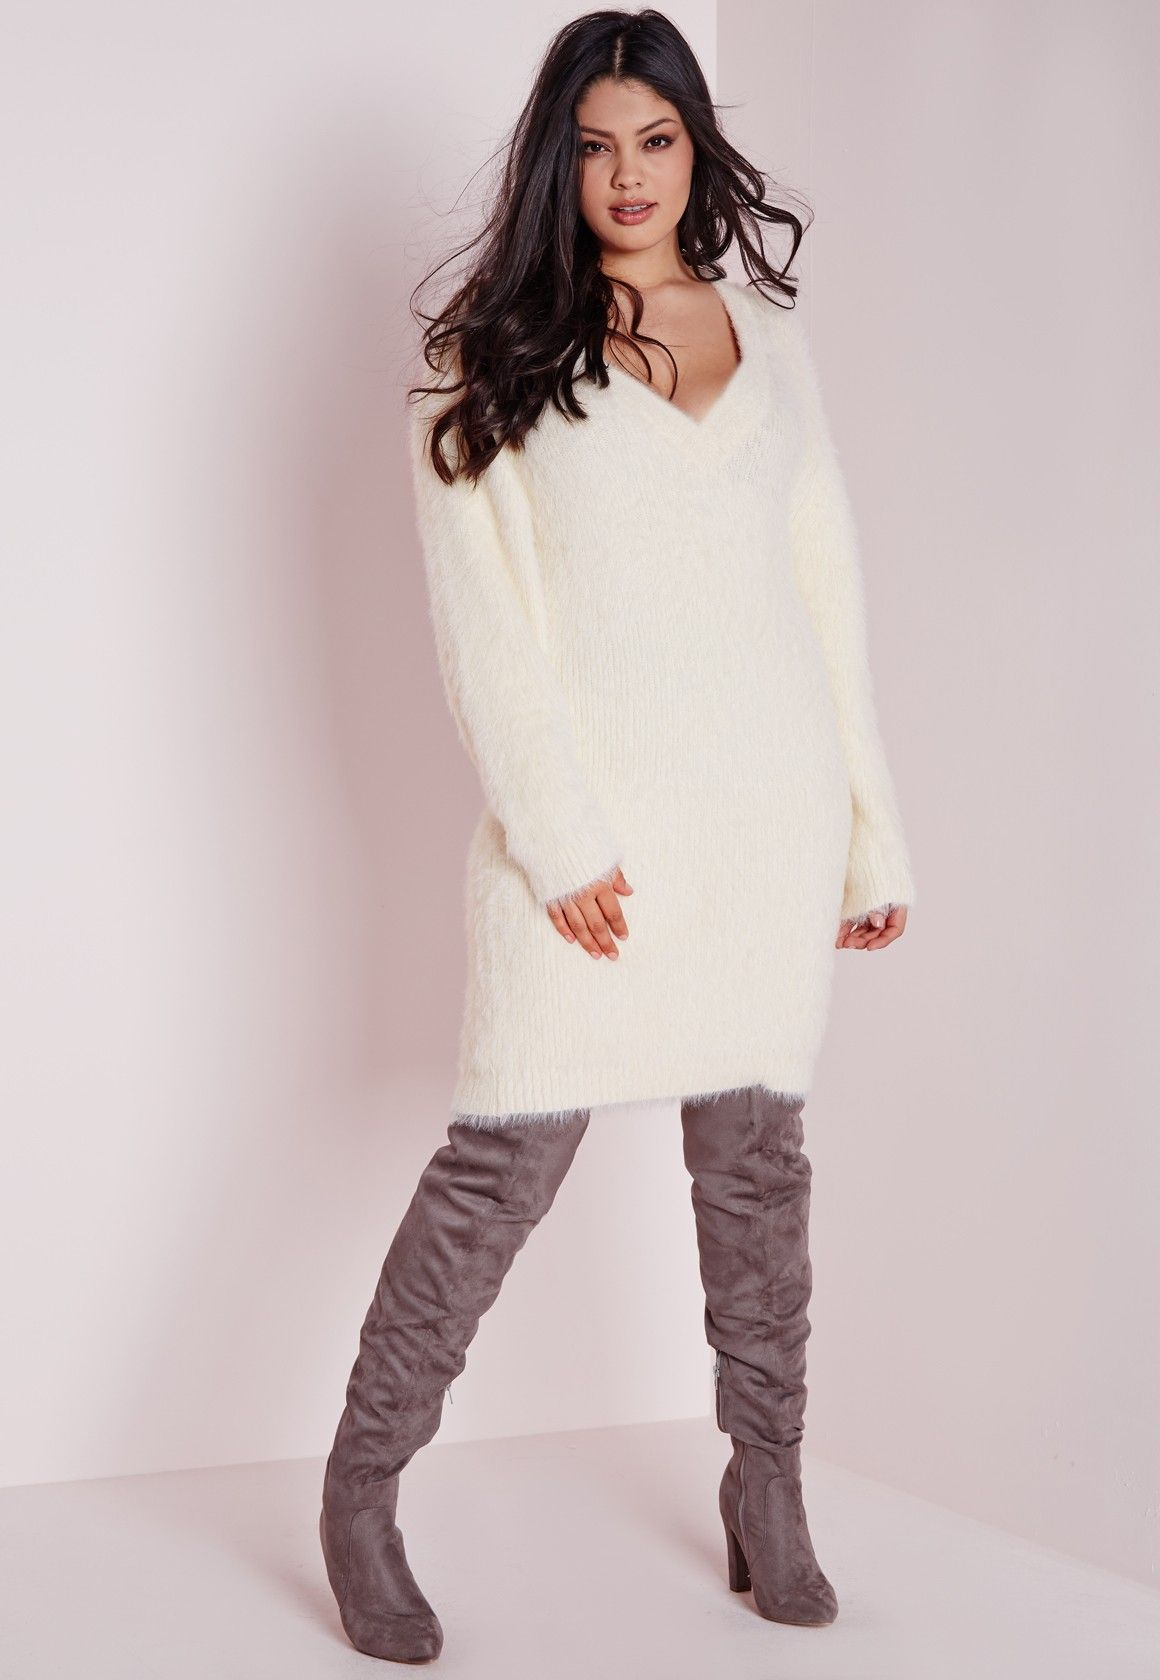 10 Affordable Plus Size Clothing Websites College Girls Size